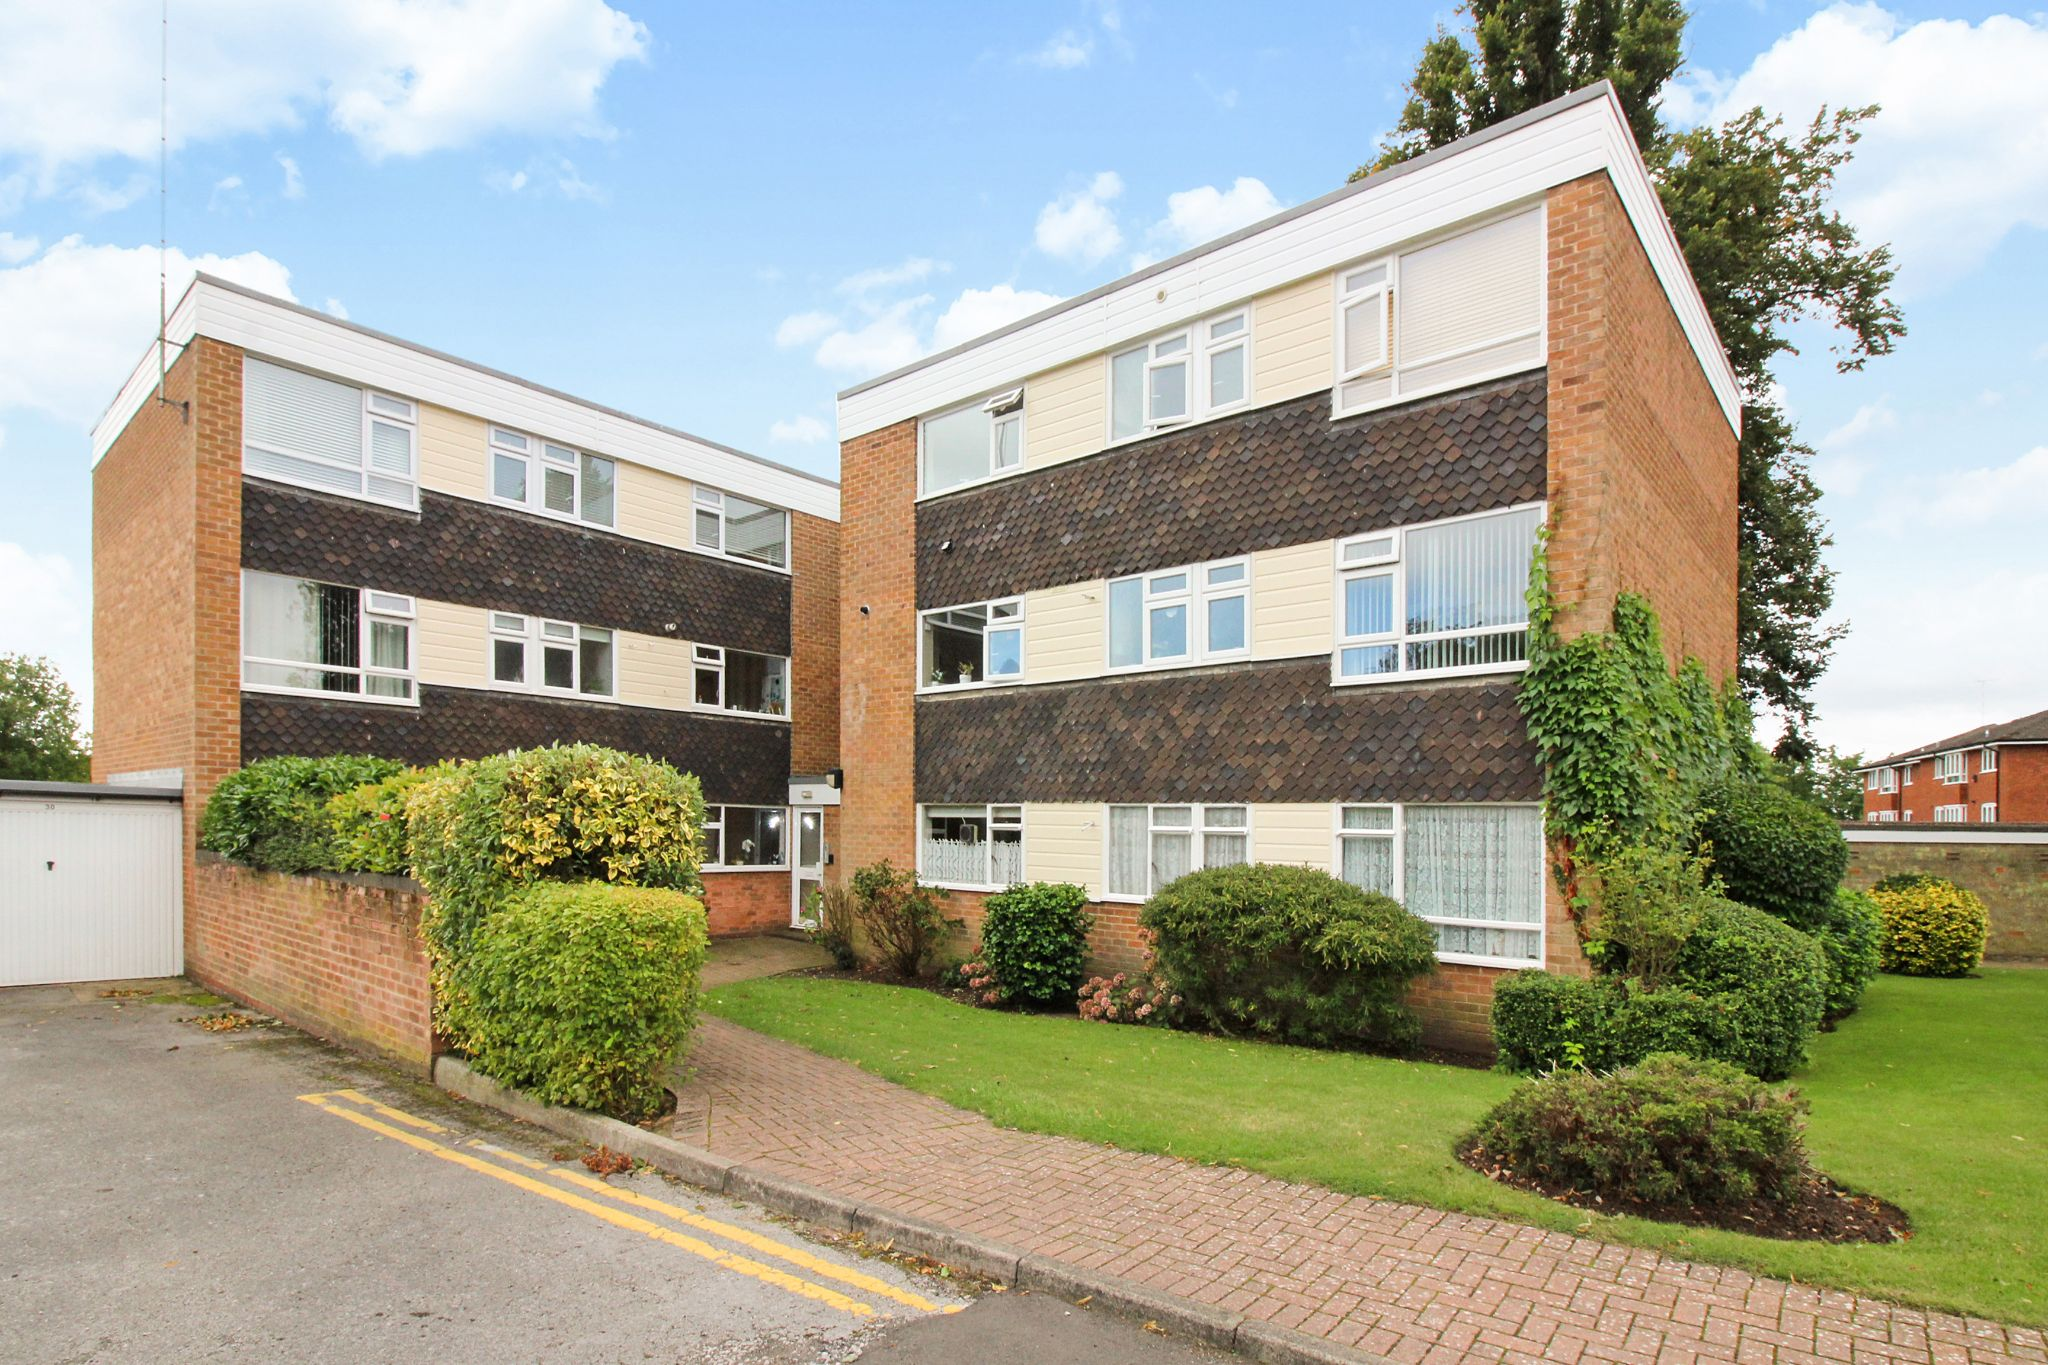 2 bedroom ground floor flat/apartment For Sale in Solihull - Photograph 1.